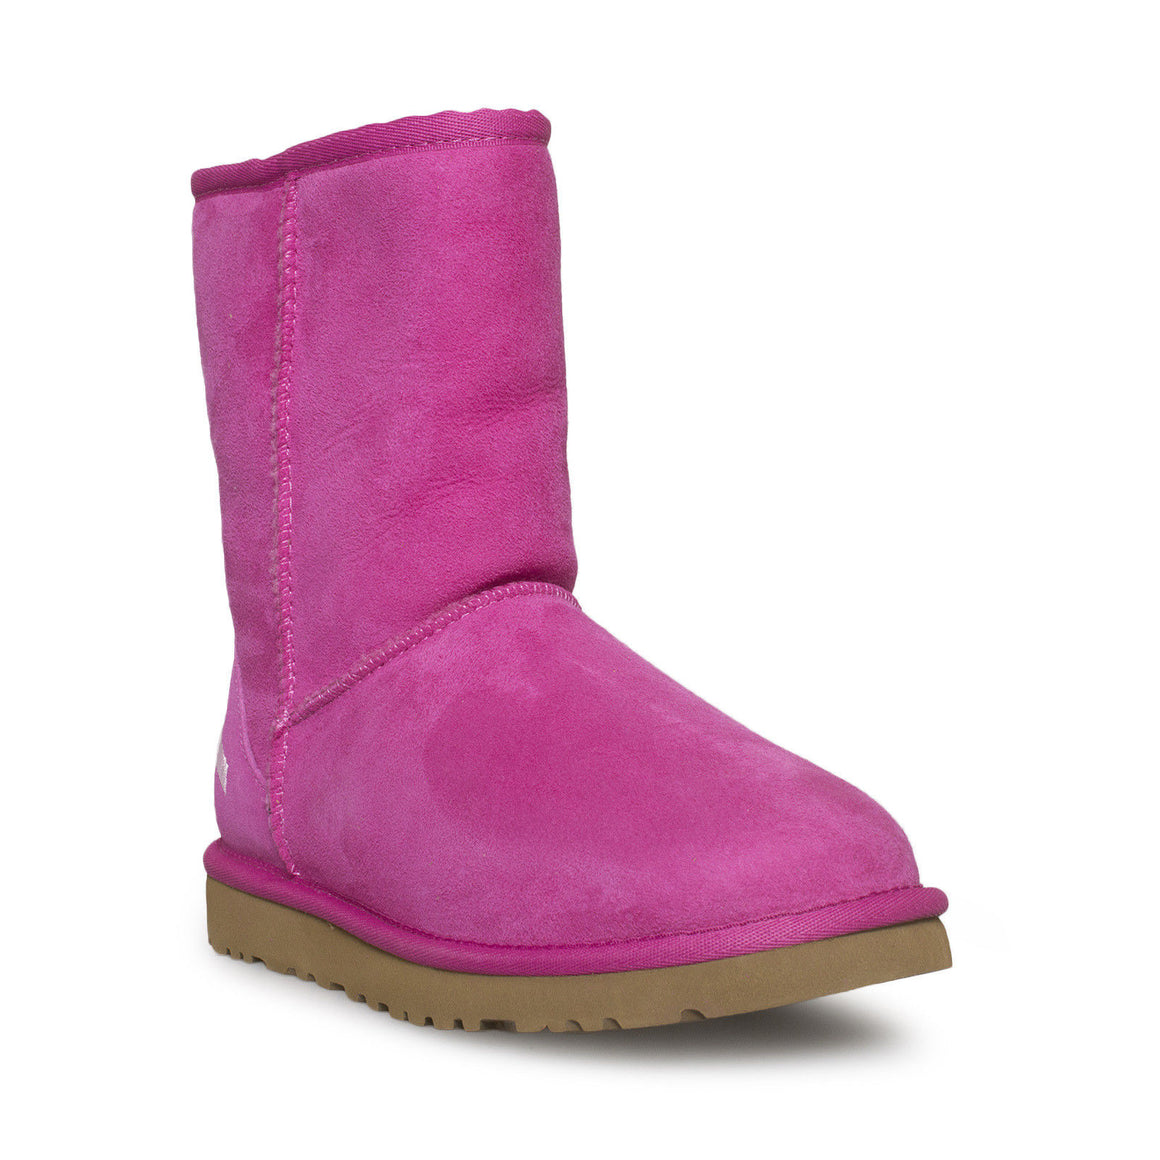 UGG Cancer Awareness Classic Short Raspberry pink Boots